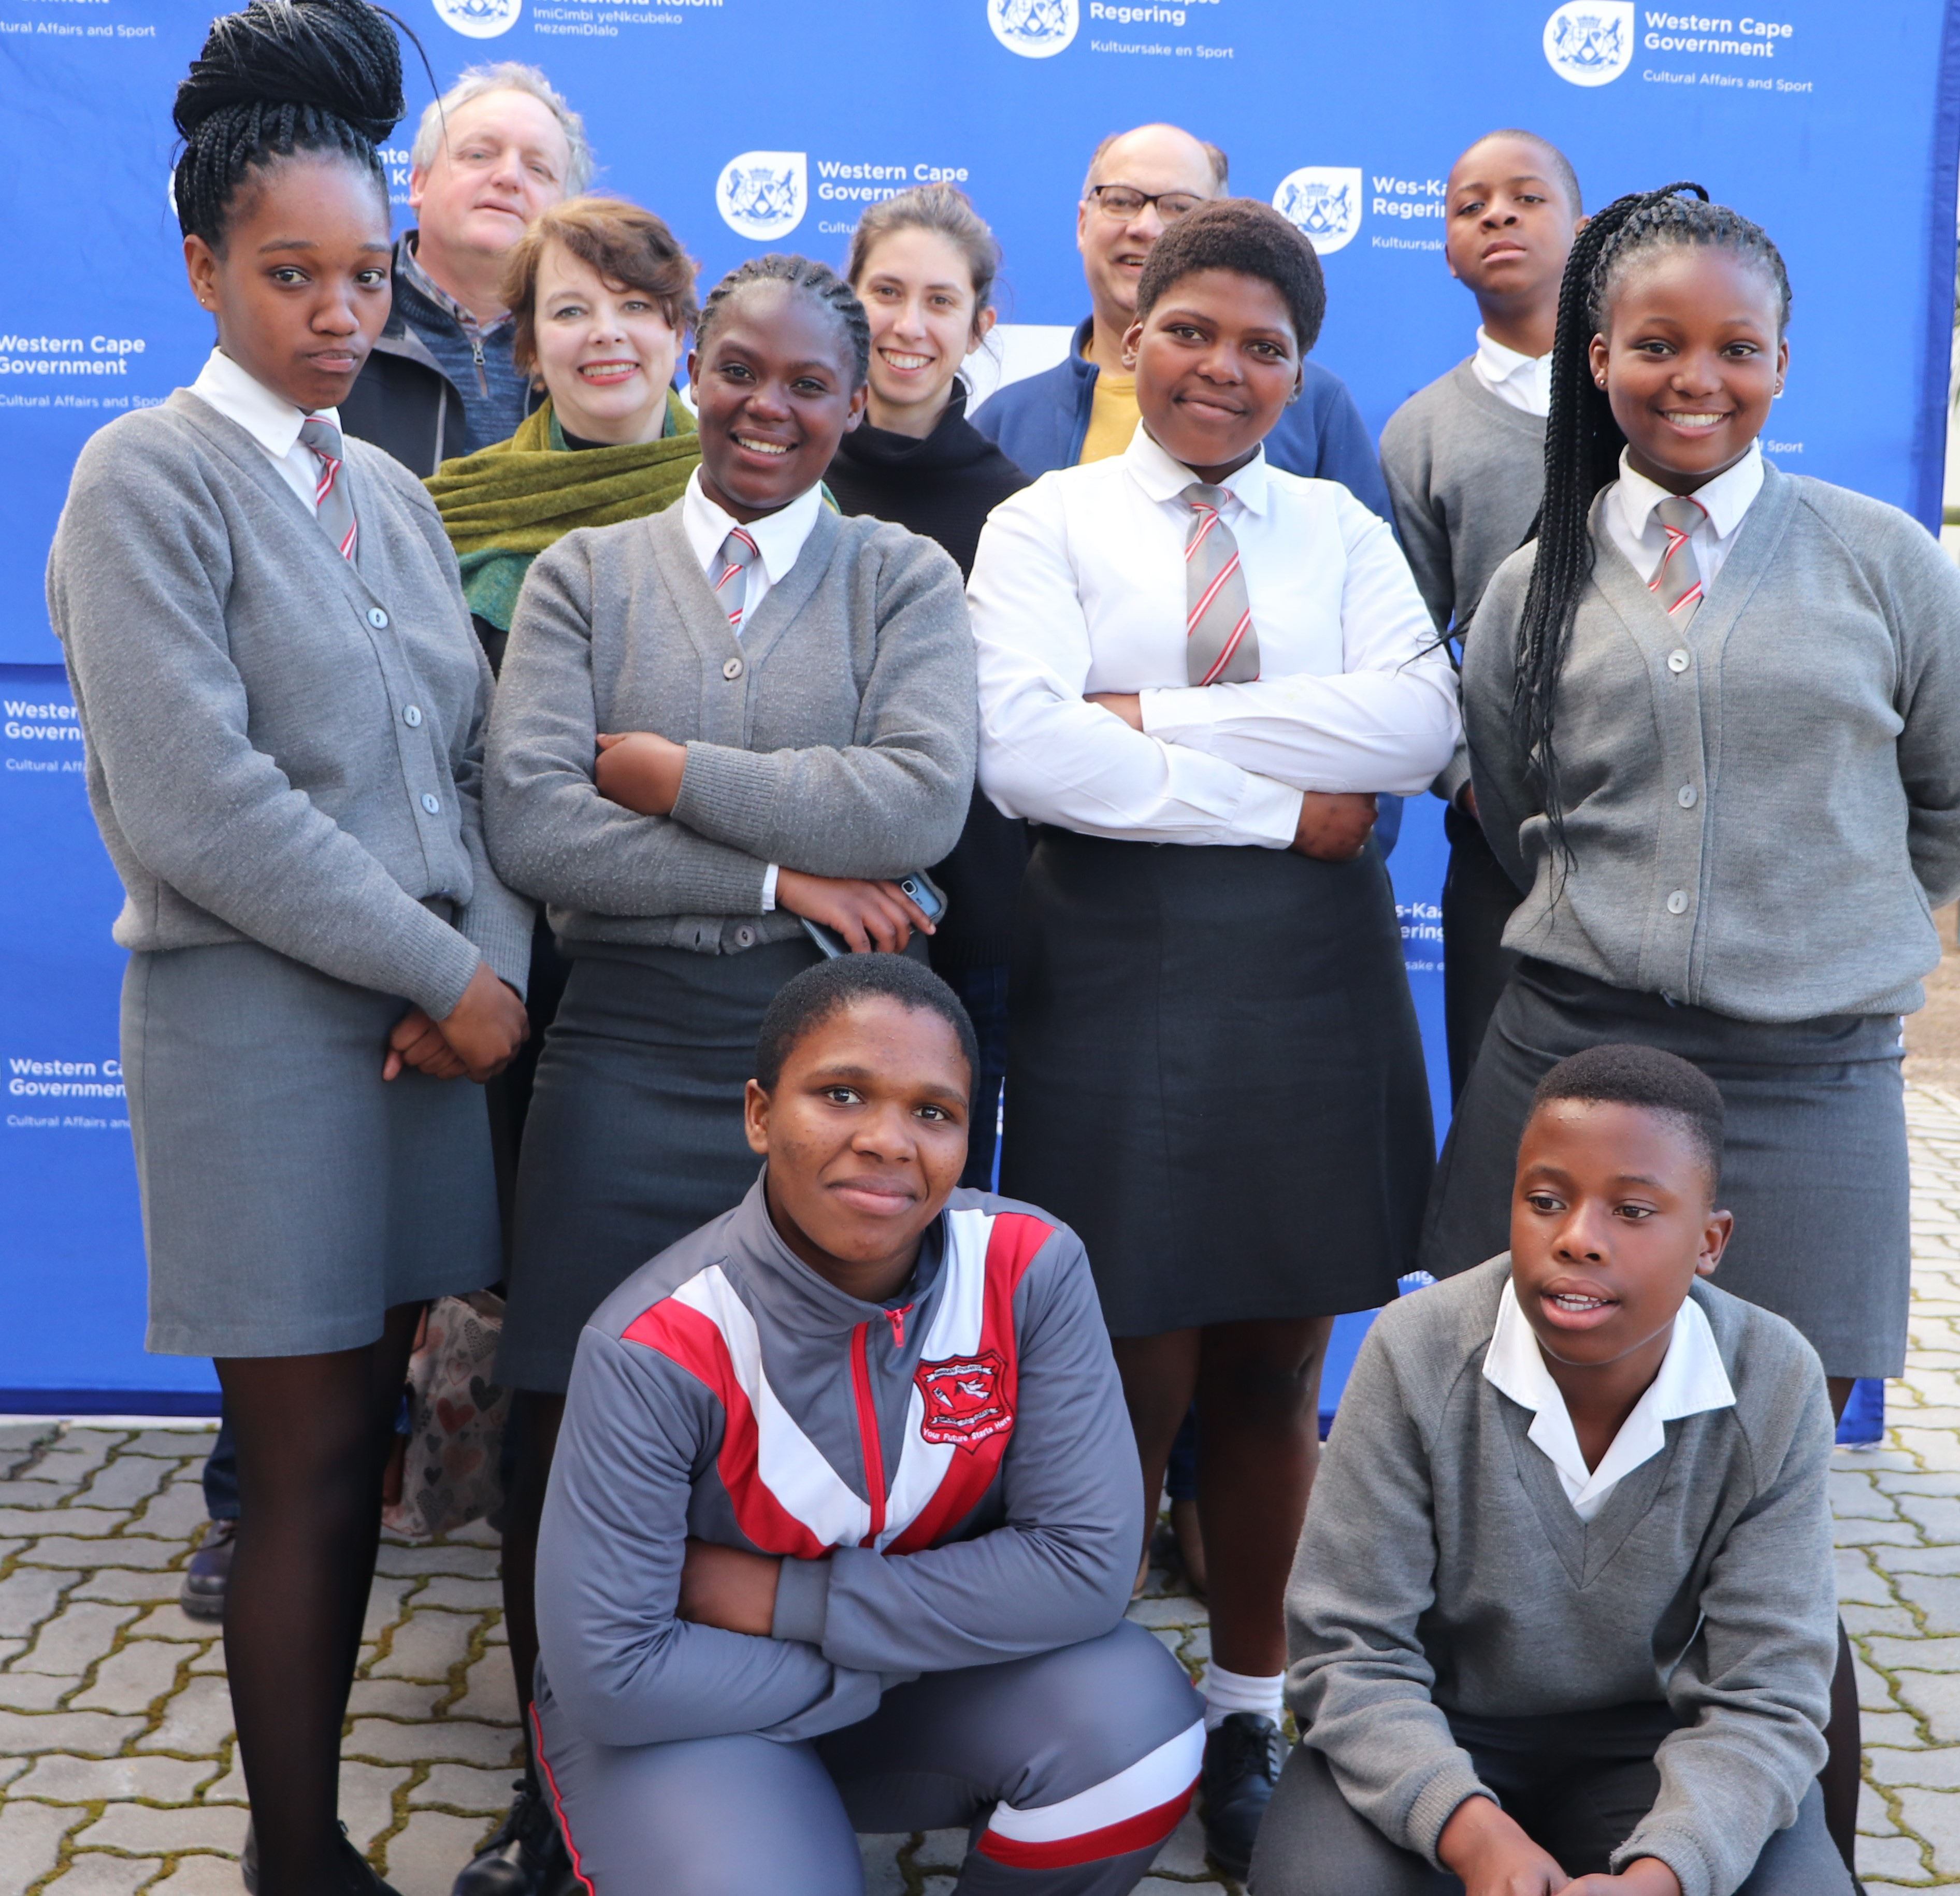 Museum staff with learners from Ikamvalethu Secondary School at the launch of the Indigenous Medicine at the Cape exhibition